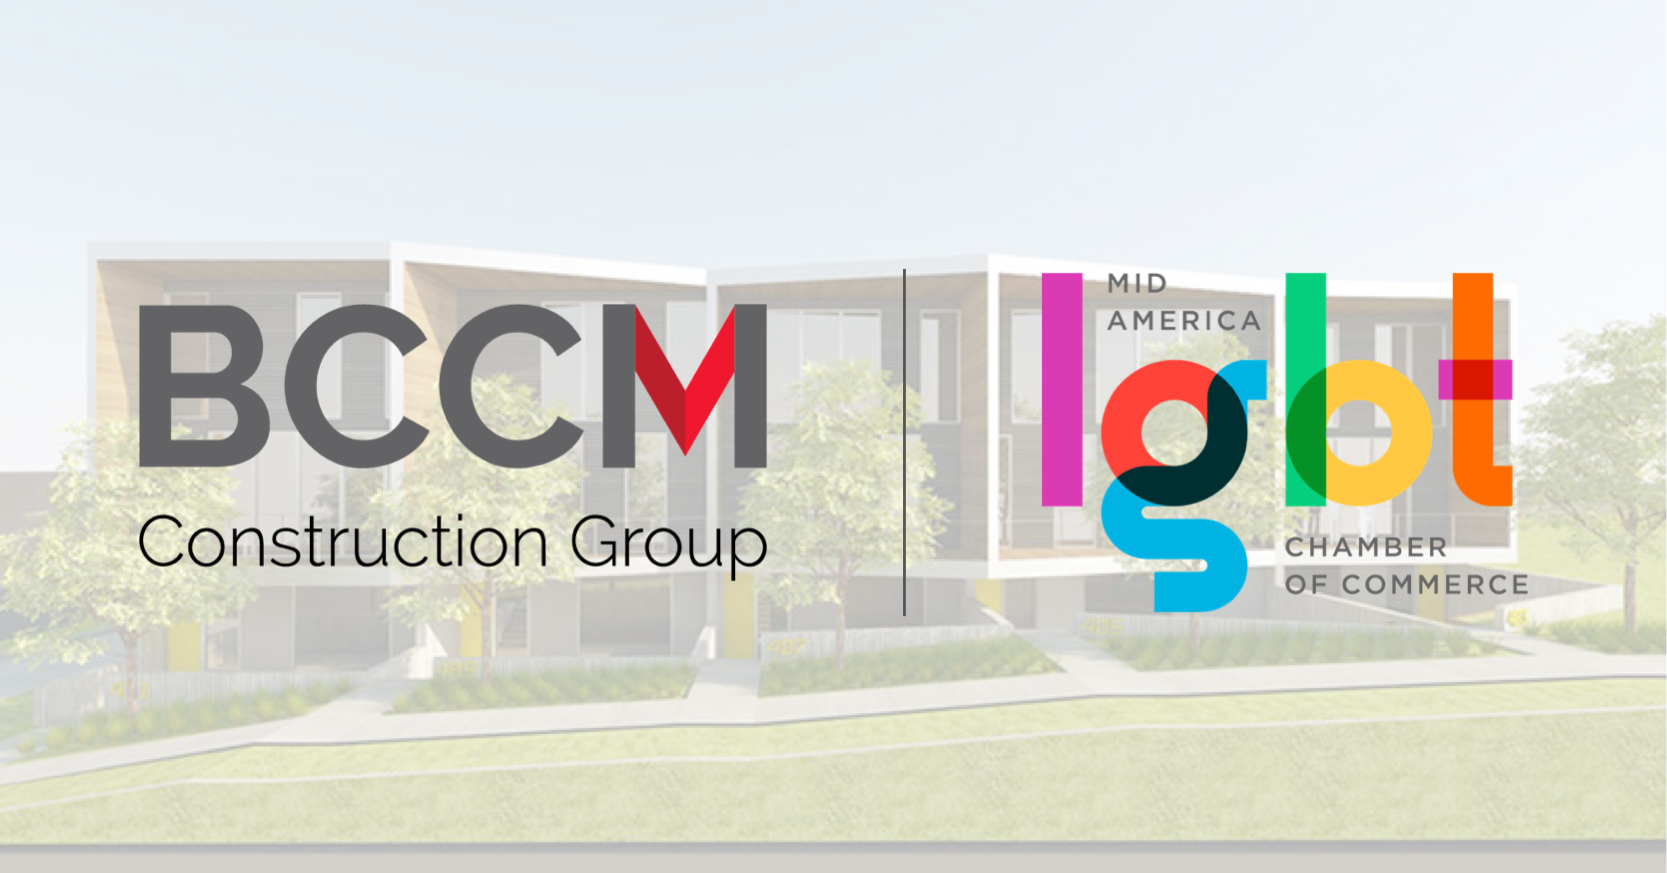 midamerica_lgbt-new_member-bccm_construction2